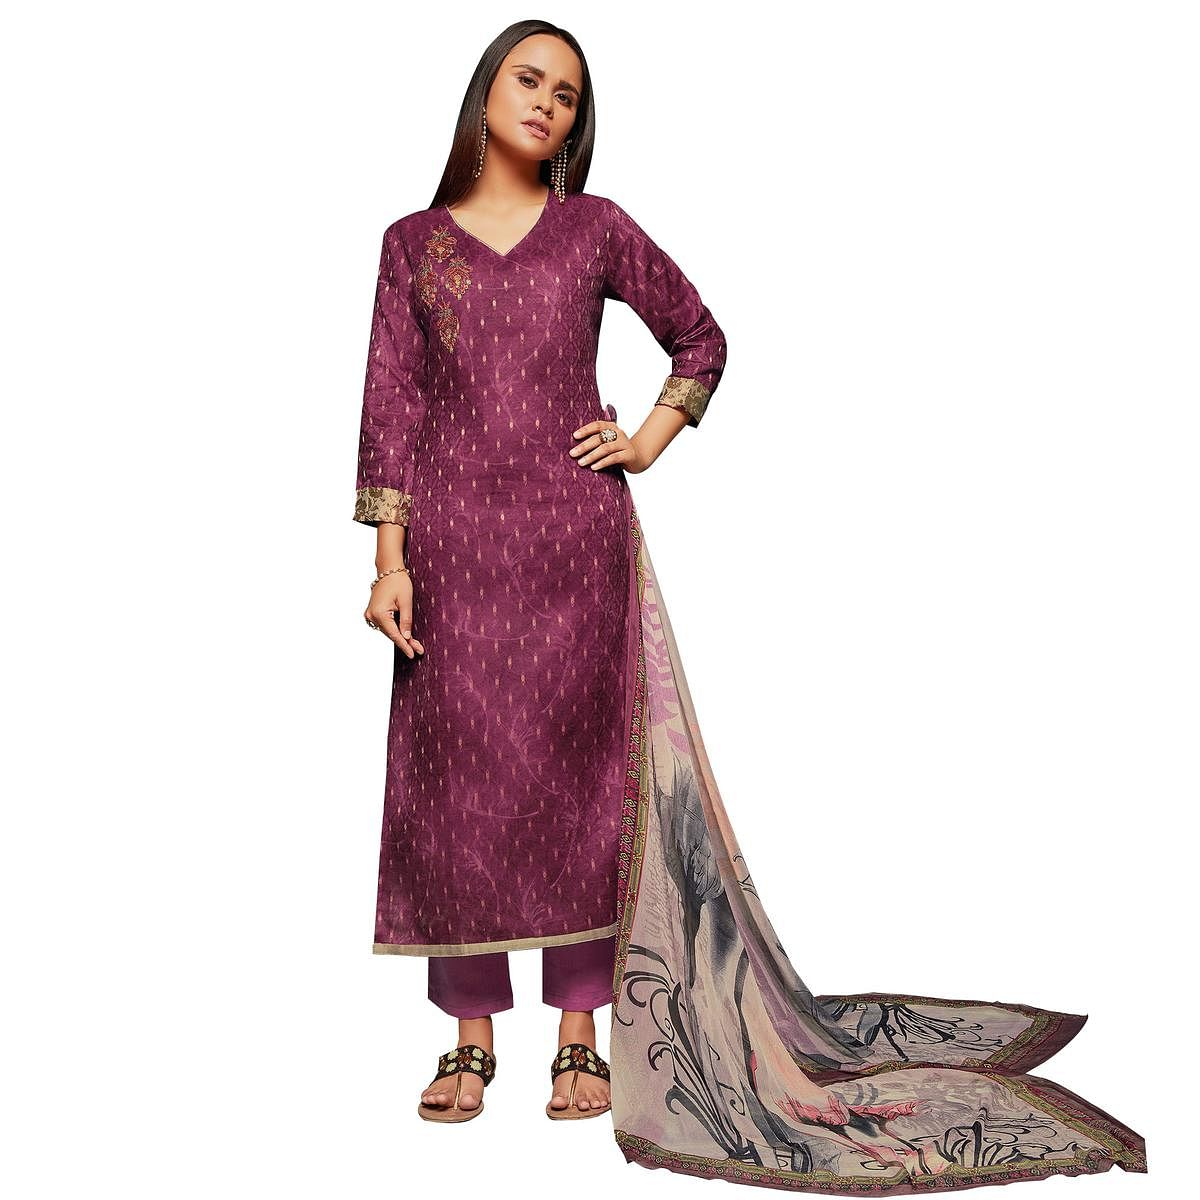 Groovy Magenta Colored Embroidered Jacquard Art Silk Suit